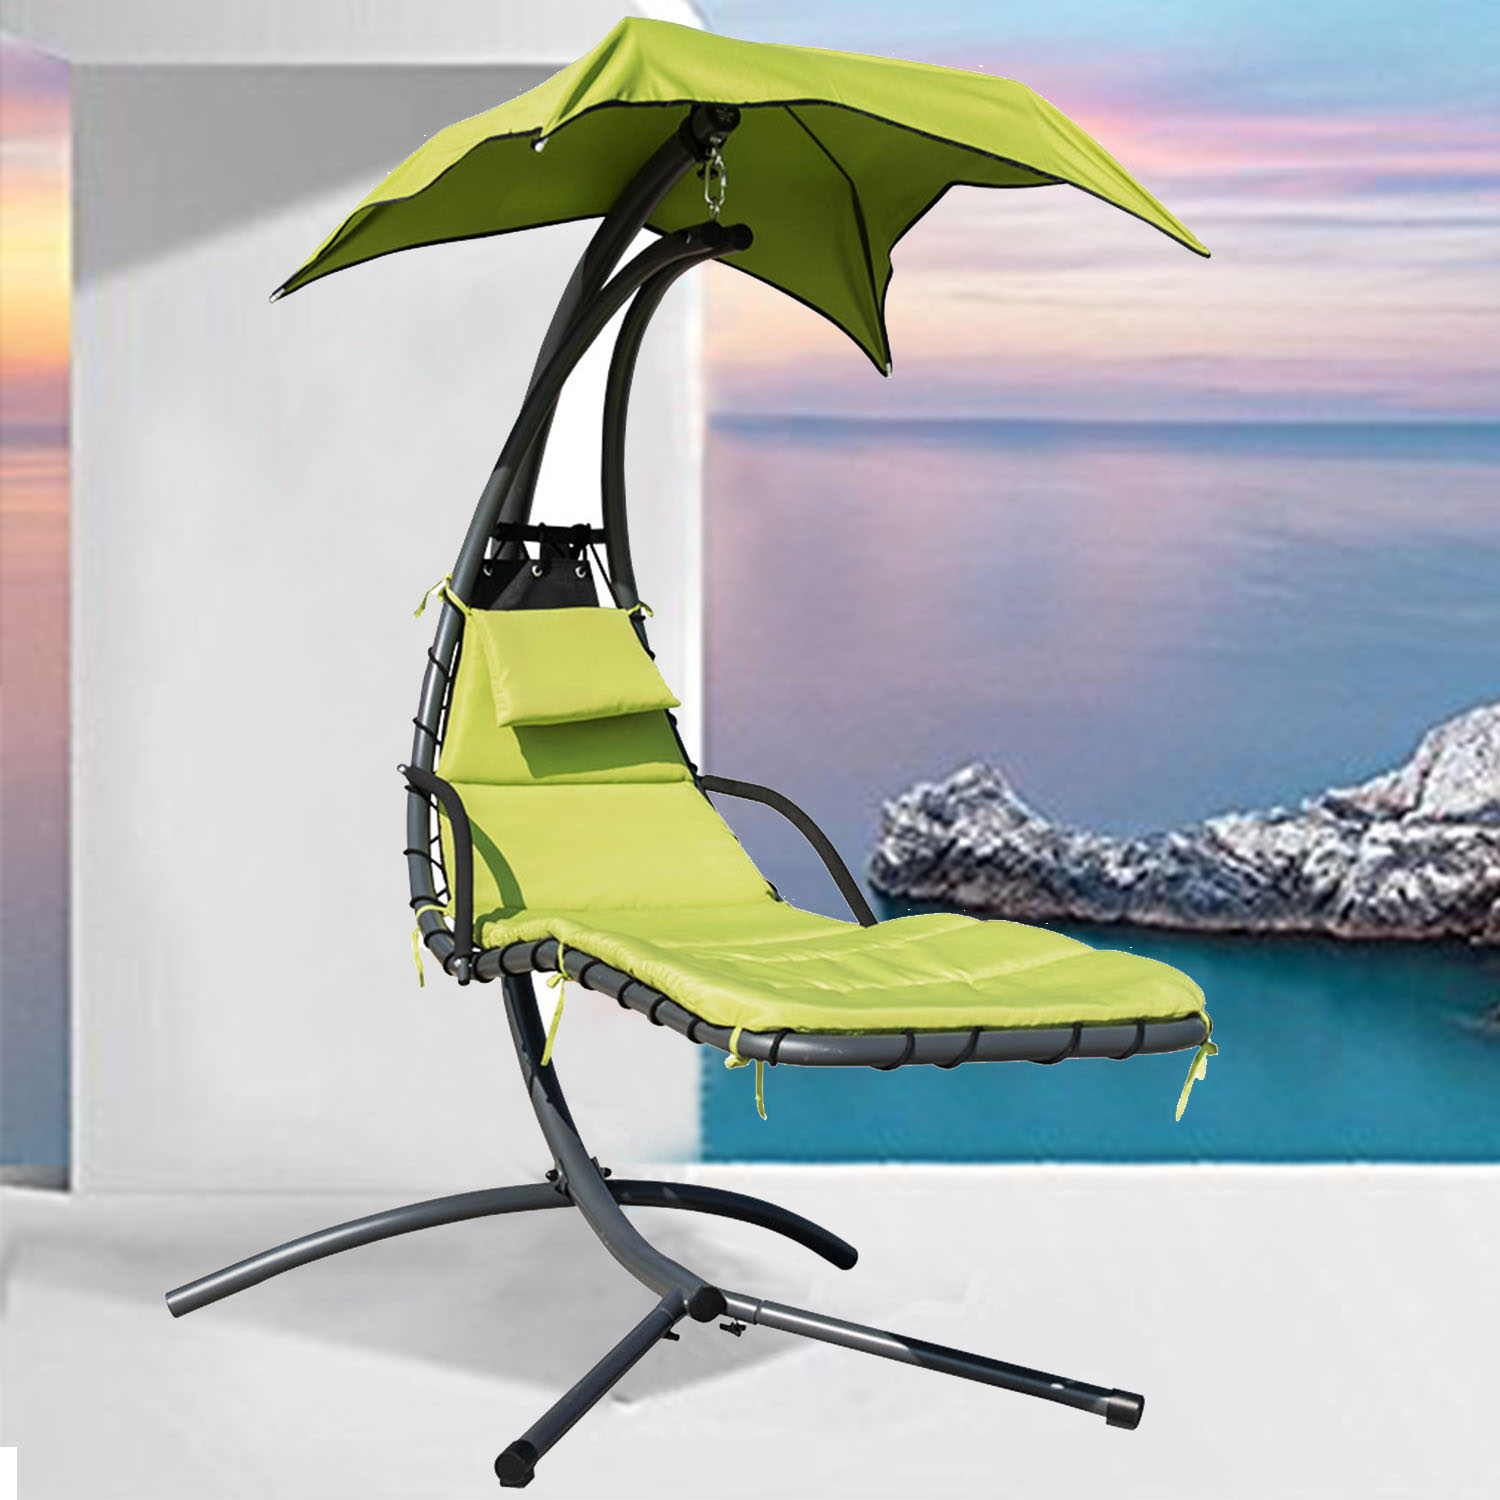 Finether Hanging Chaise Lounge Chair | Detachable Outdoor orIndoor Hammock Chair Swing with Arc Stand,Canopy,and Cushion for Patio,Beach,Yard,Garden